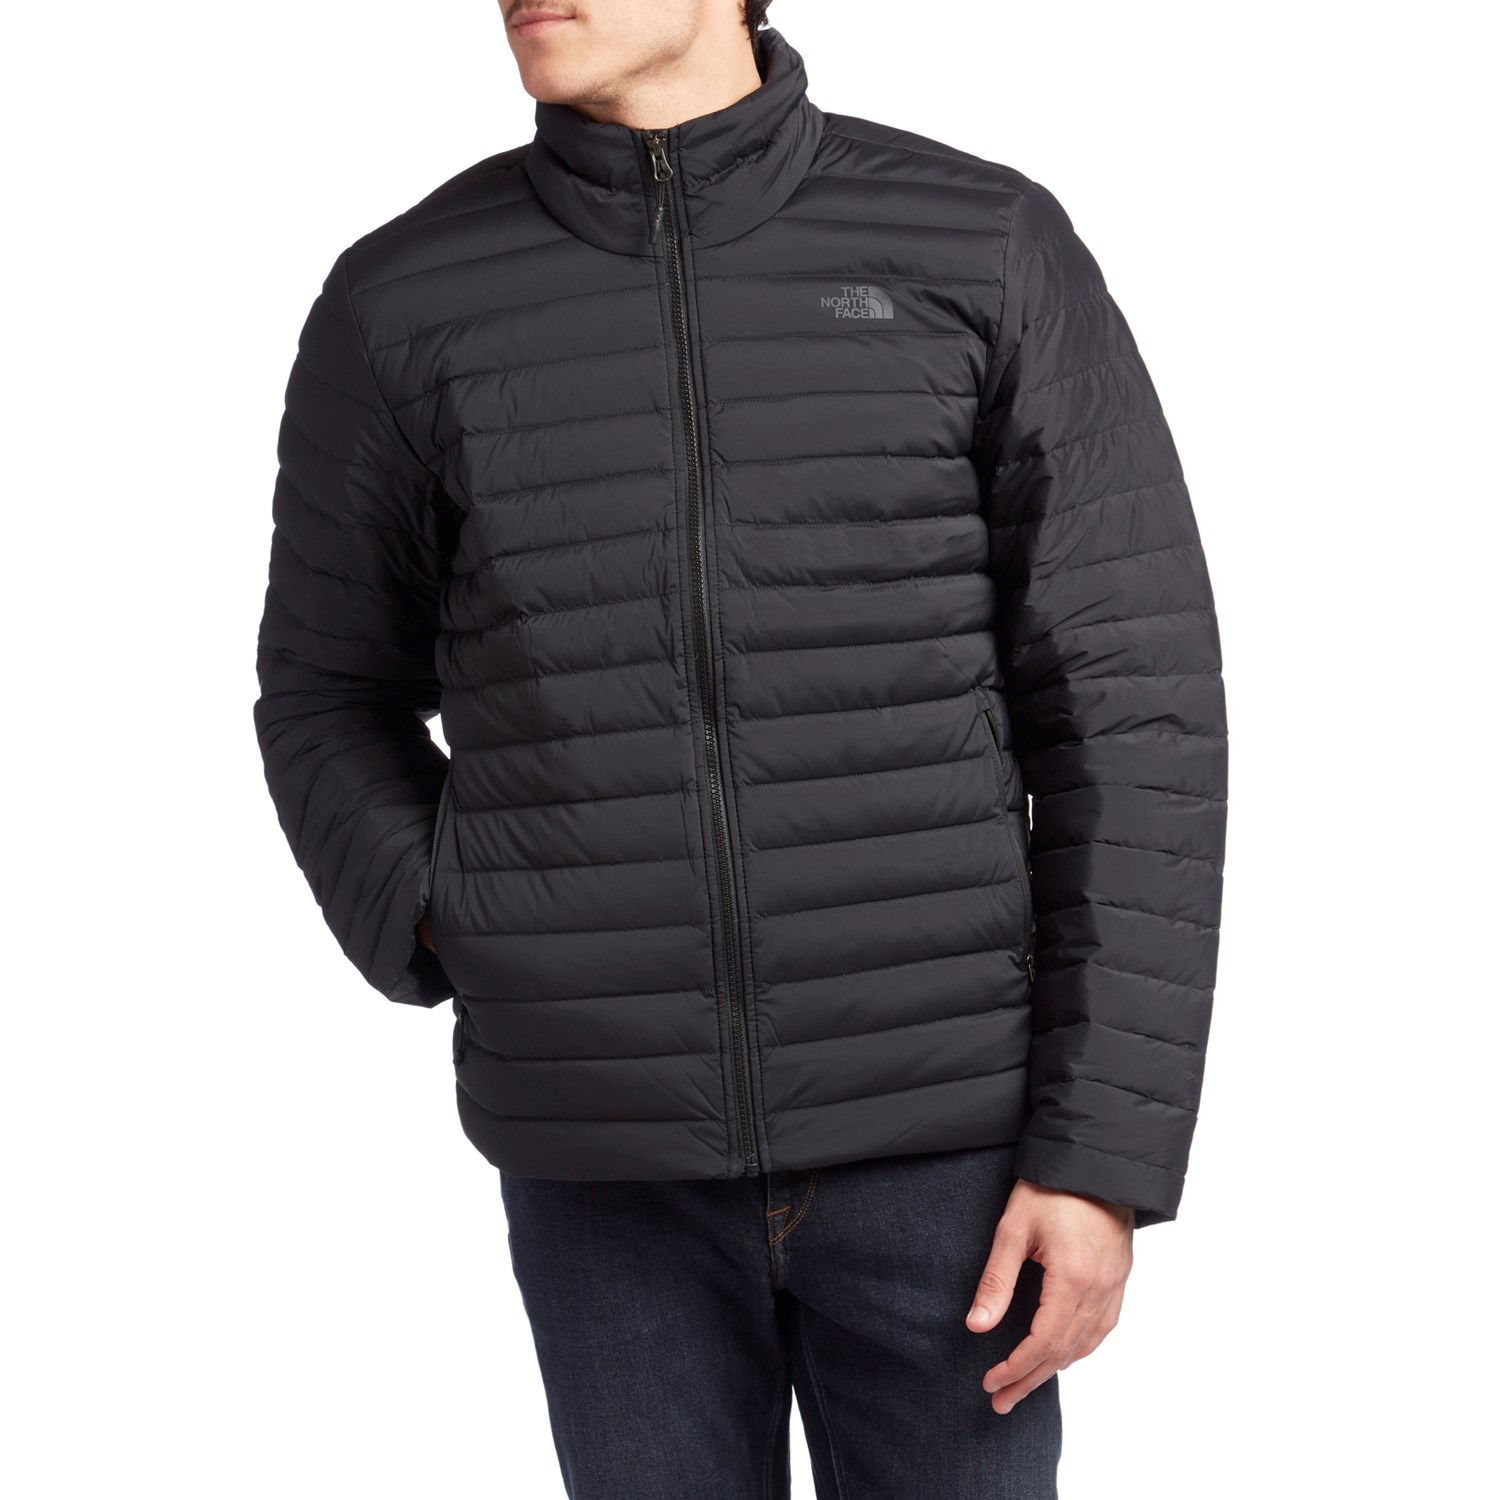 ed679b67c The North Face Stretch Down Jacket